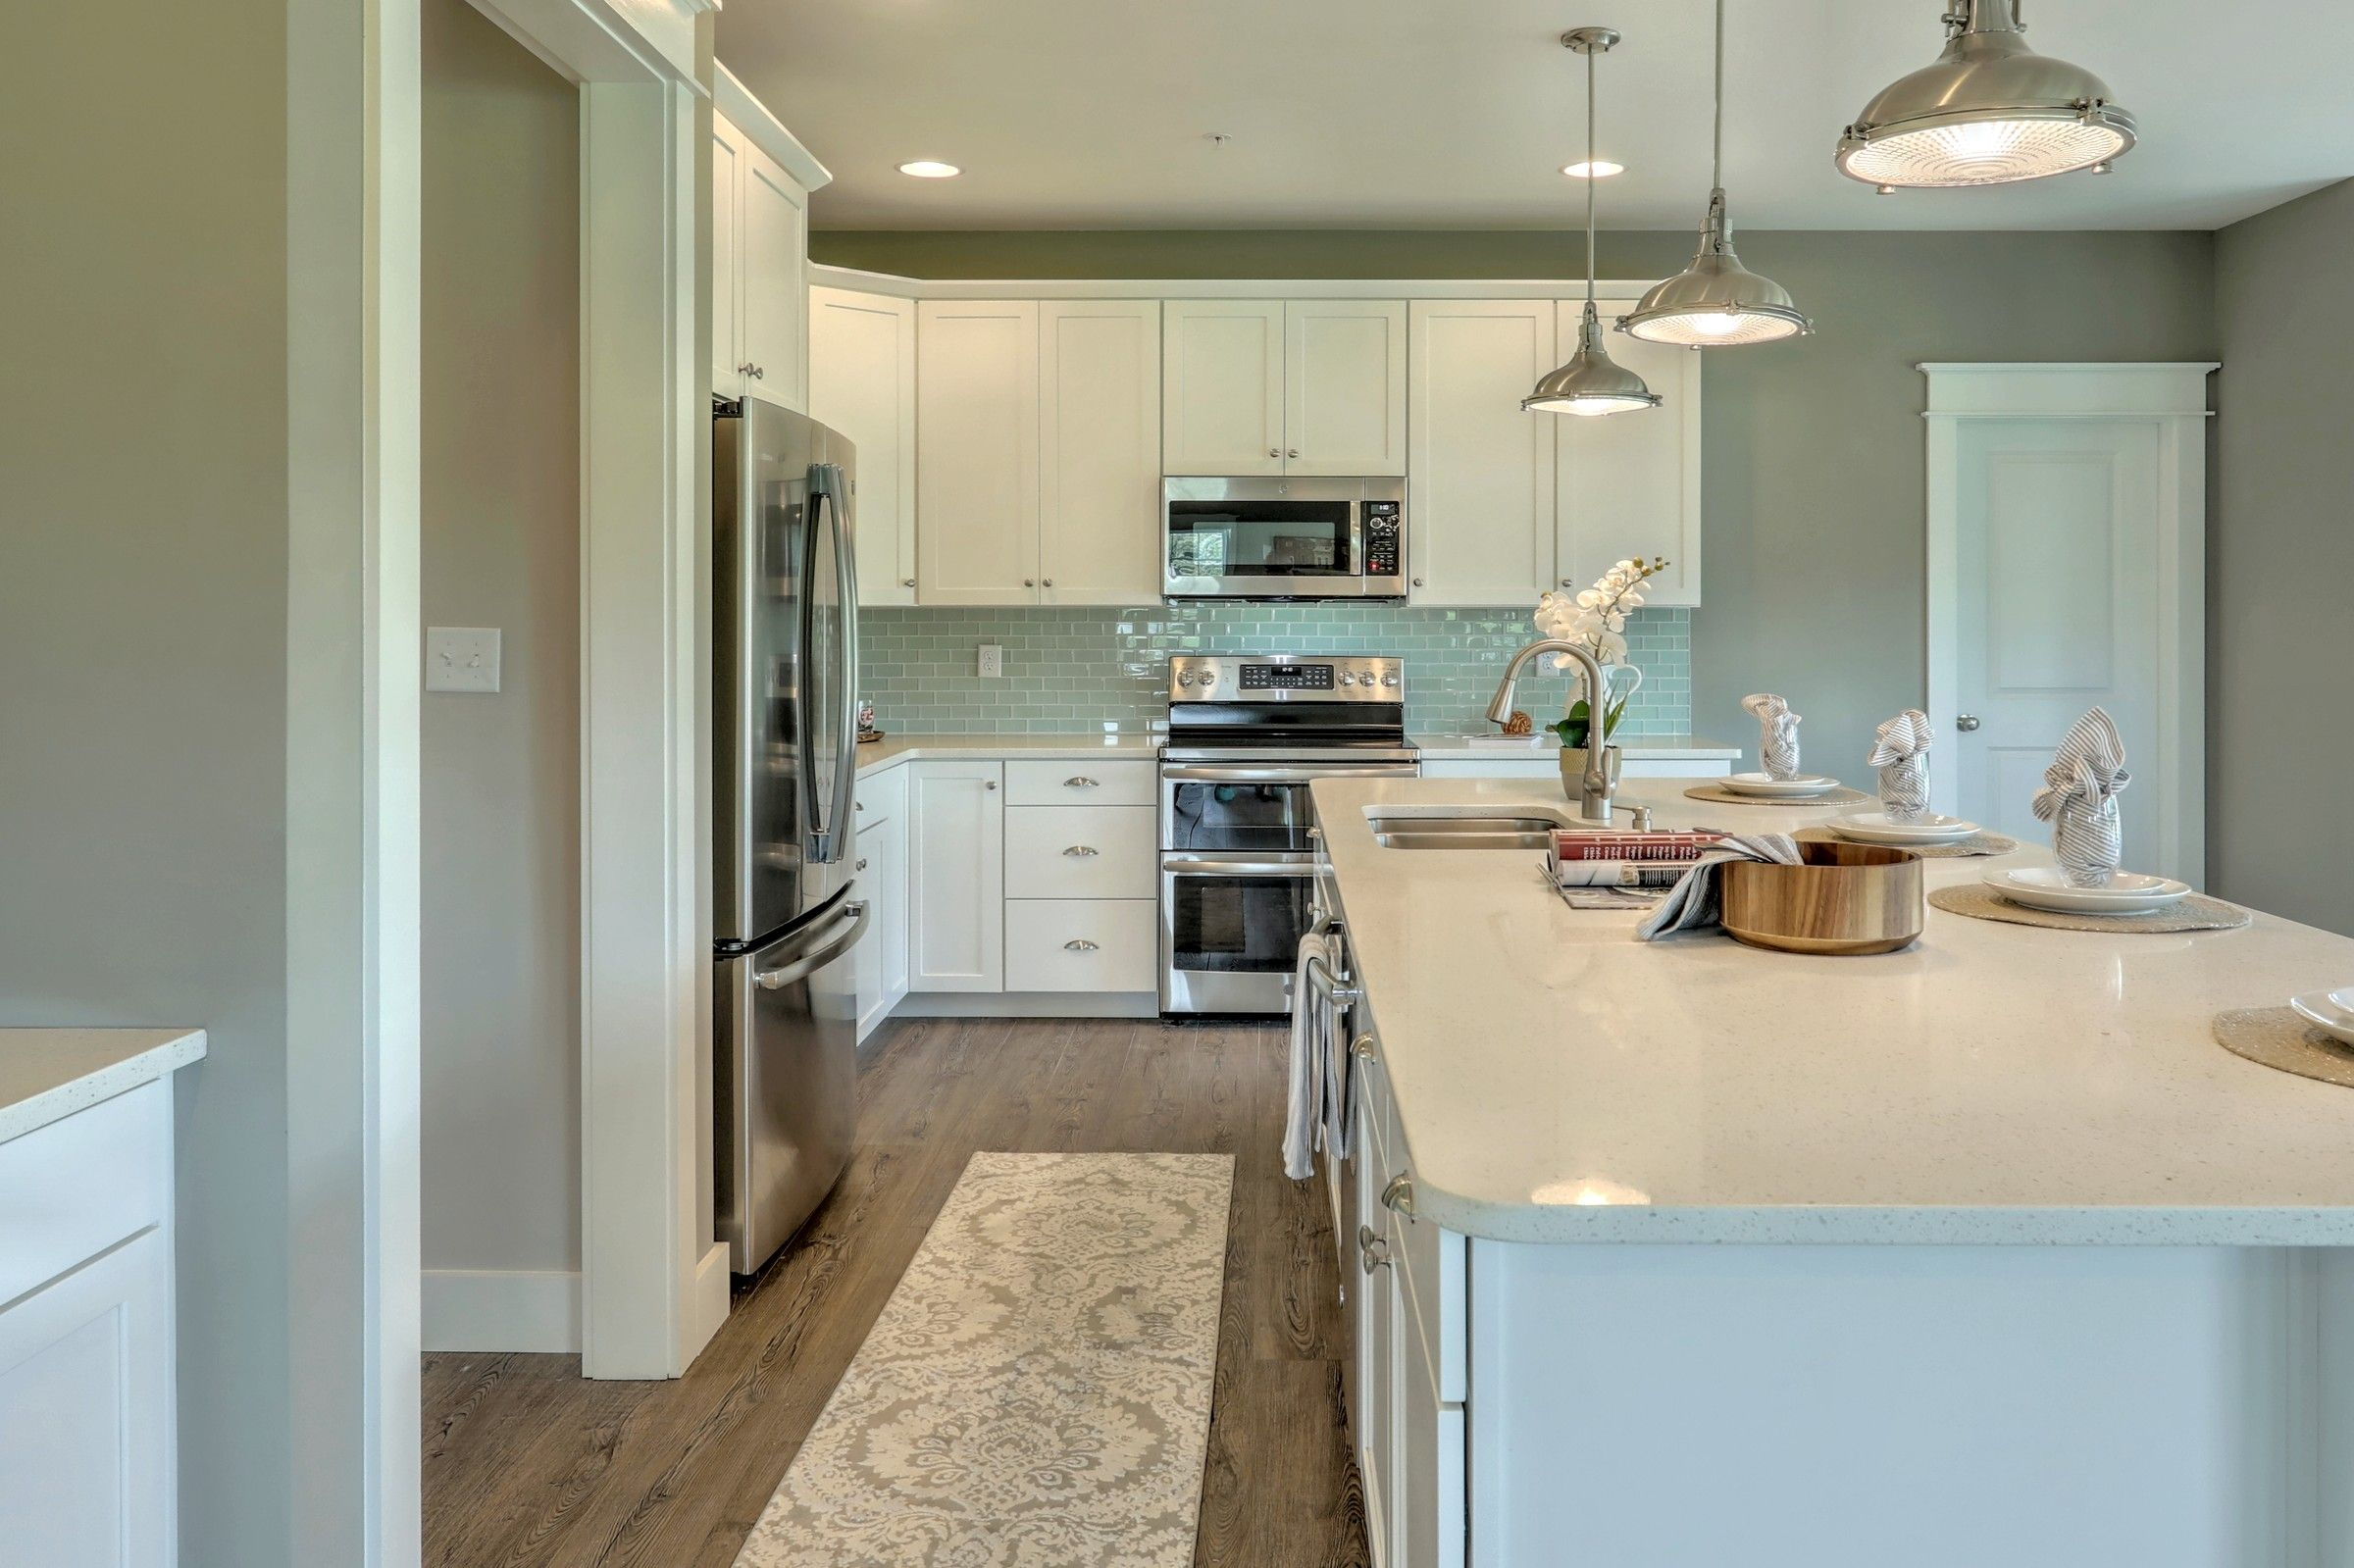 Kitchen featured in the Ethan English Cottage By Keystone Custom Homes in York, PA